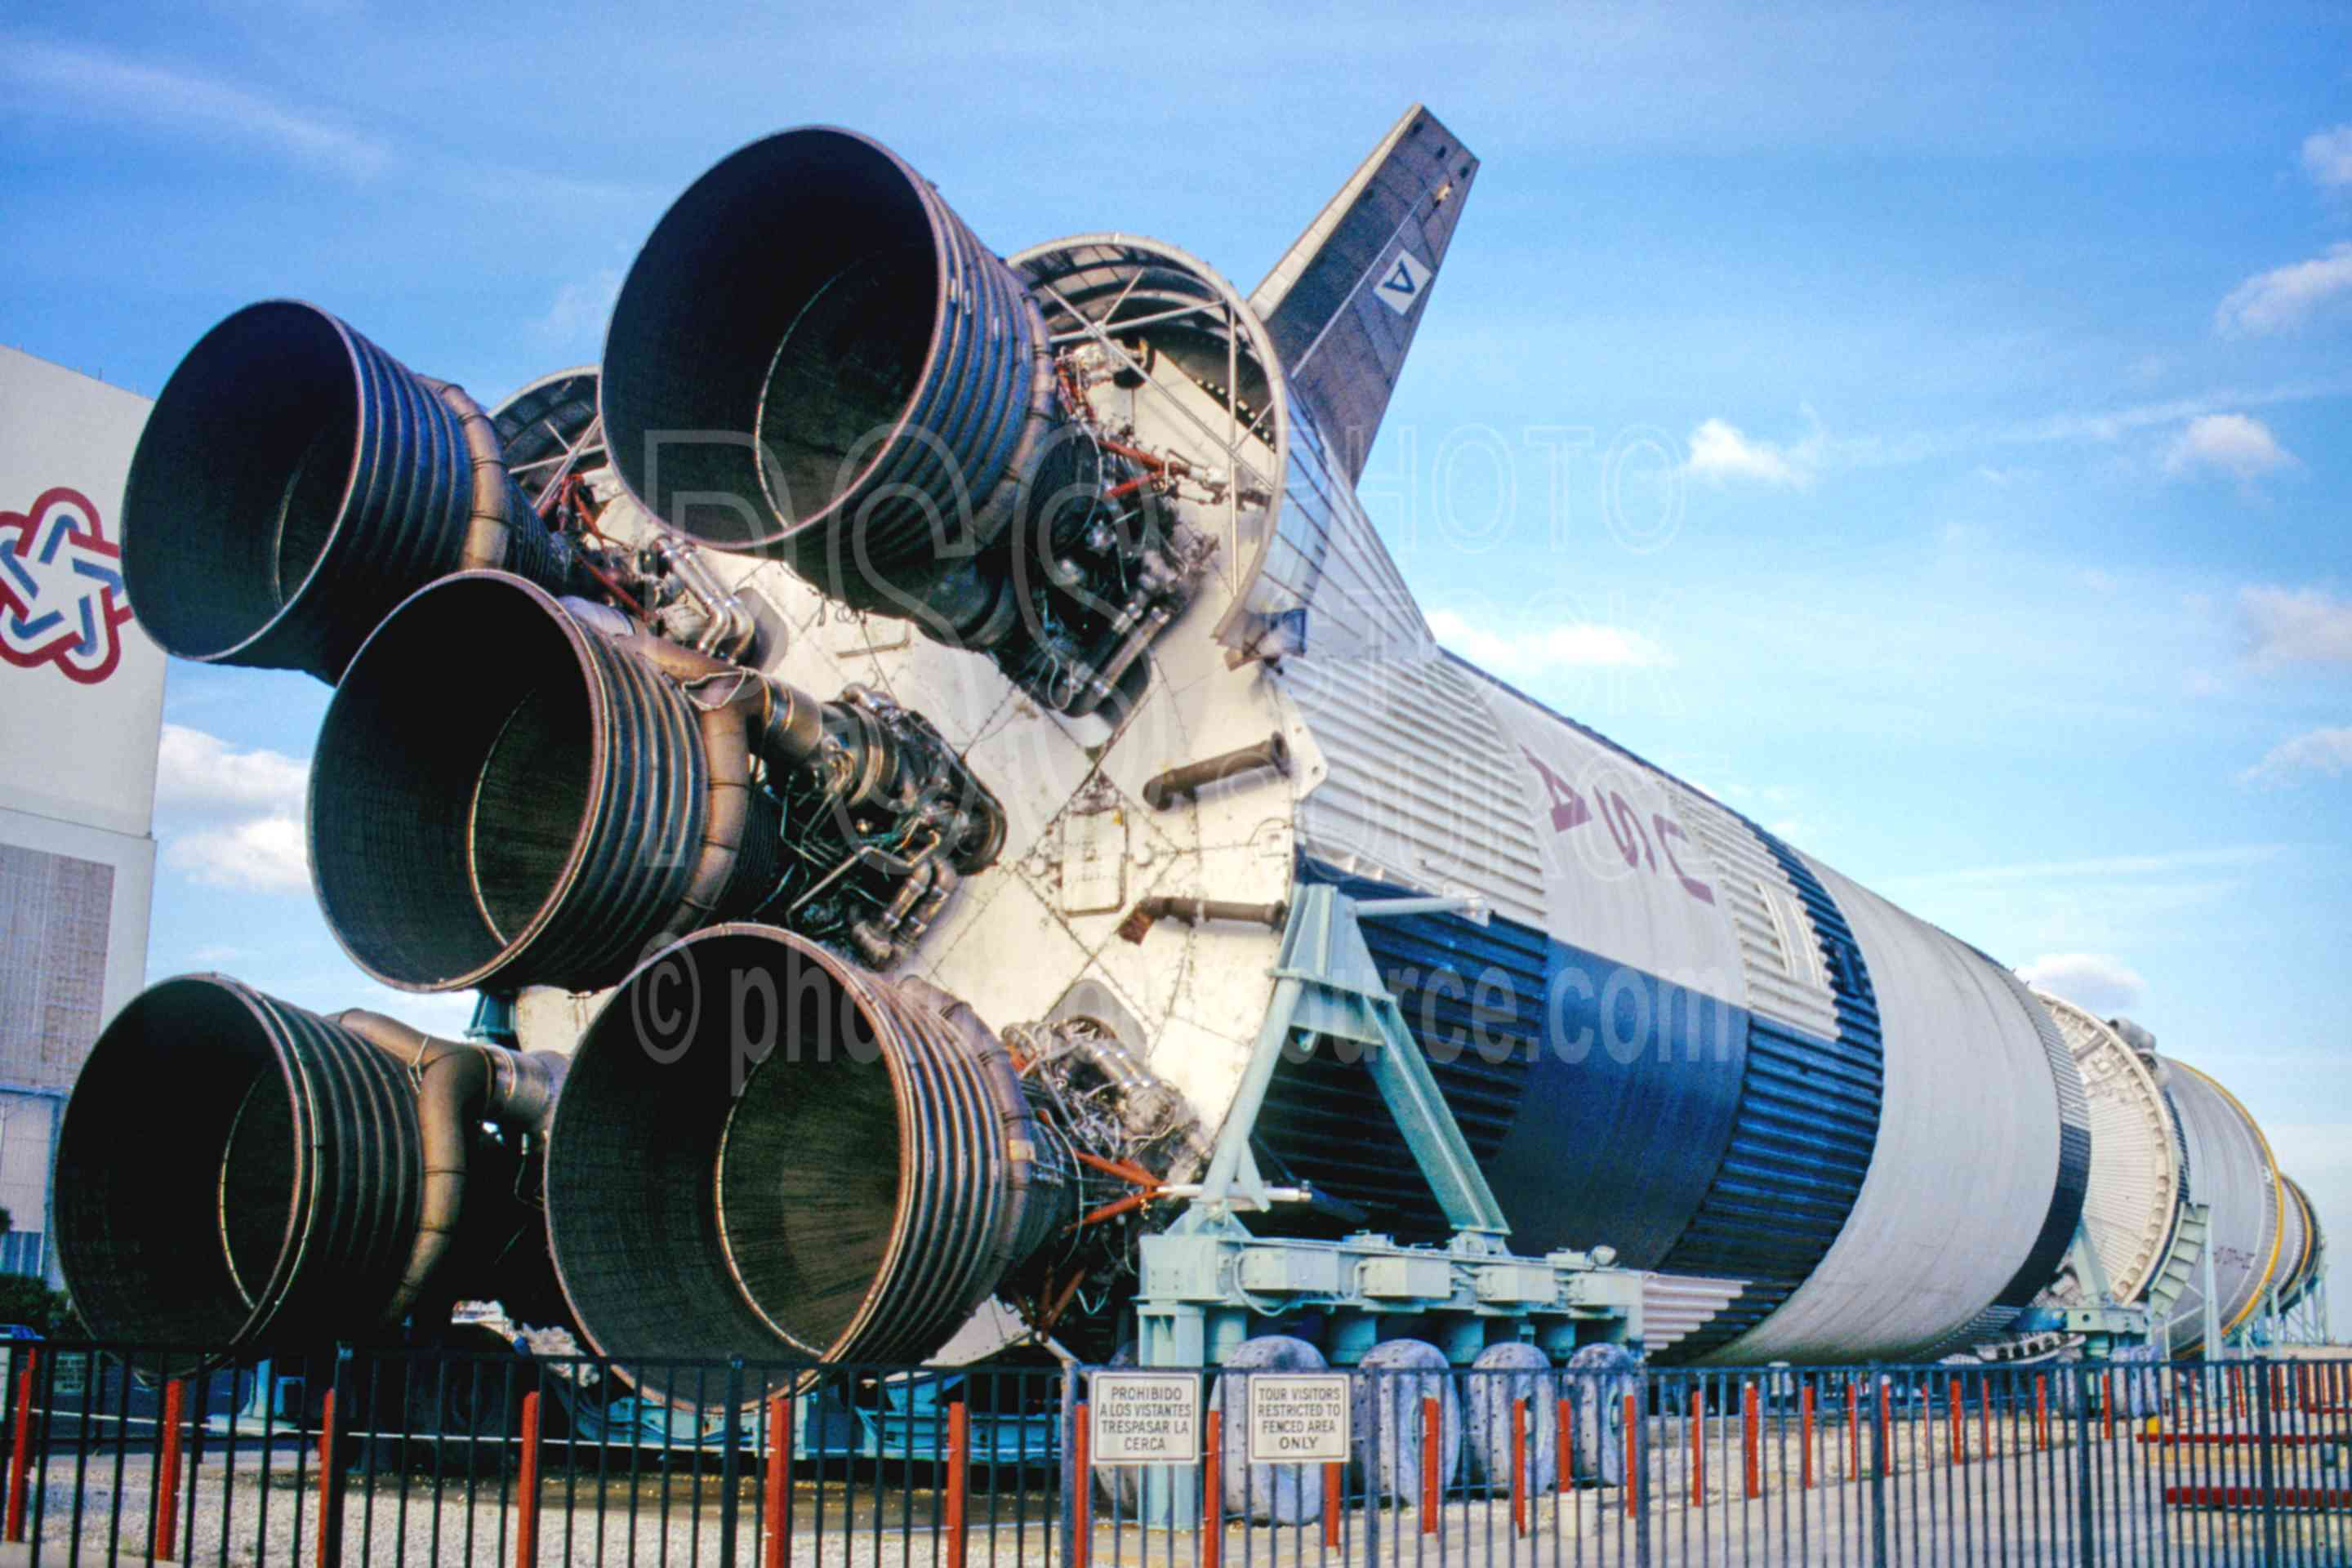 Apollo Spacecraft,apollo,spacecraft,rocket,rocket engine,usas,aeronautics